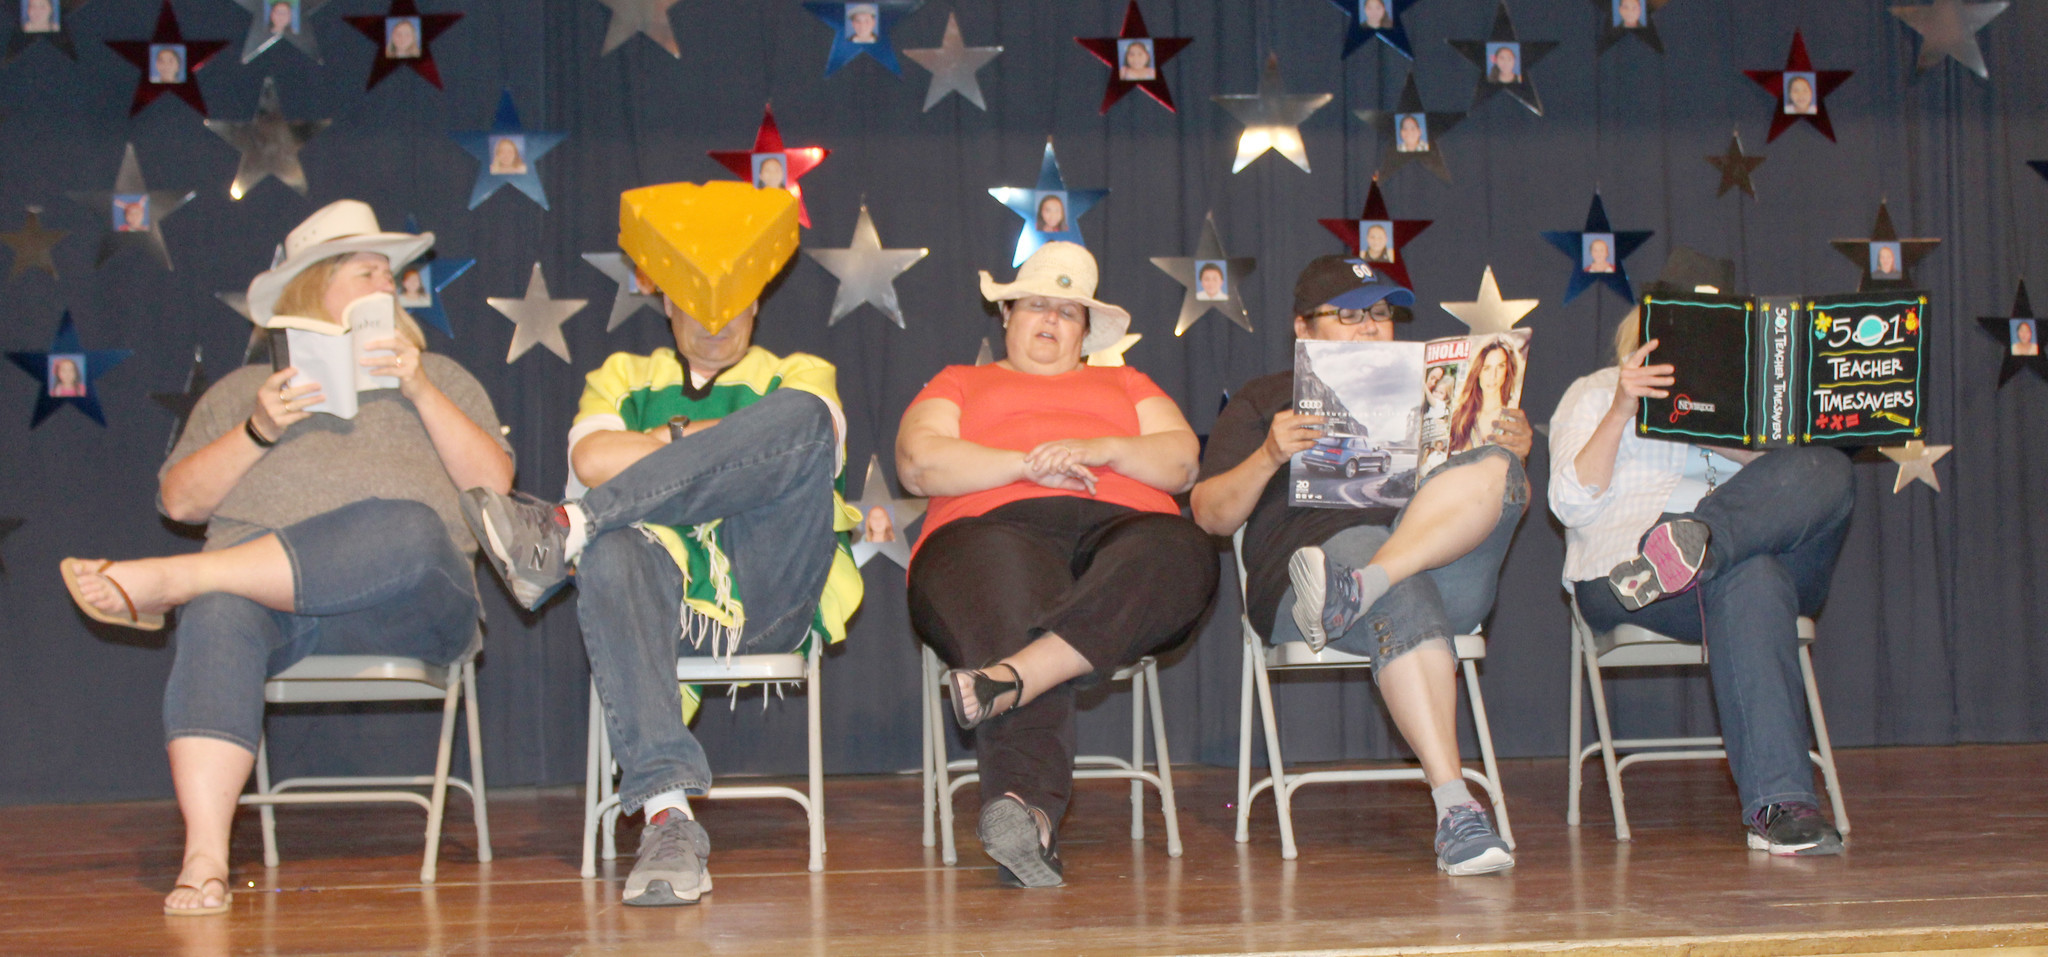 In a skit that builds momentum before an abrupt ending are teachers Leah Hillis-Finley, Michael Zehm, Susan Douglass, Sandra Jimenez, and Lisa Bennett.